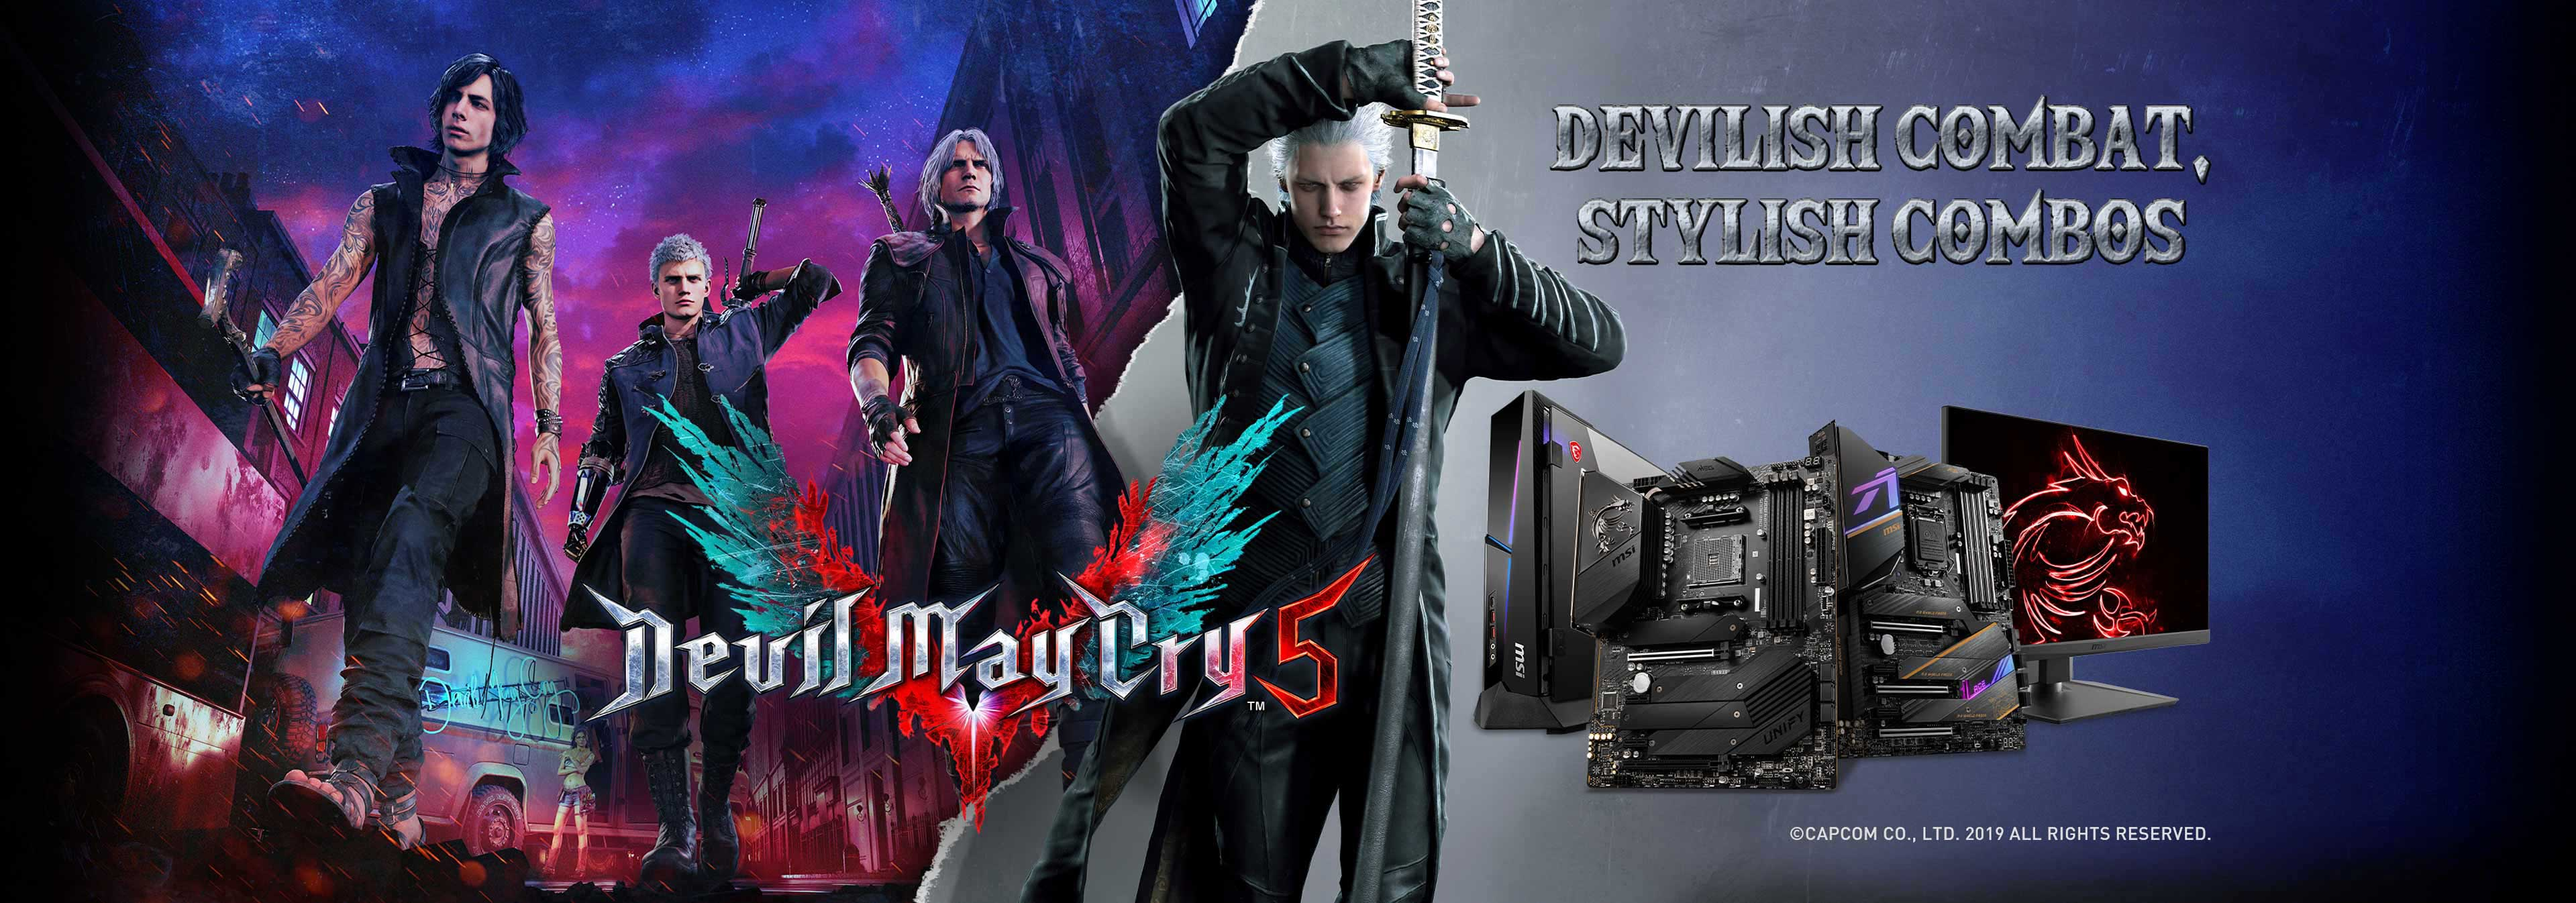 msi devil may cry event banner